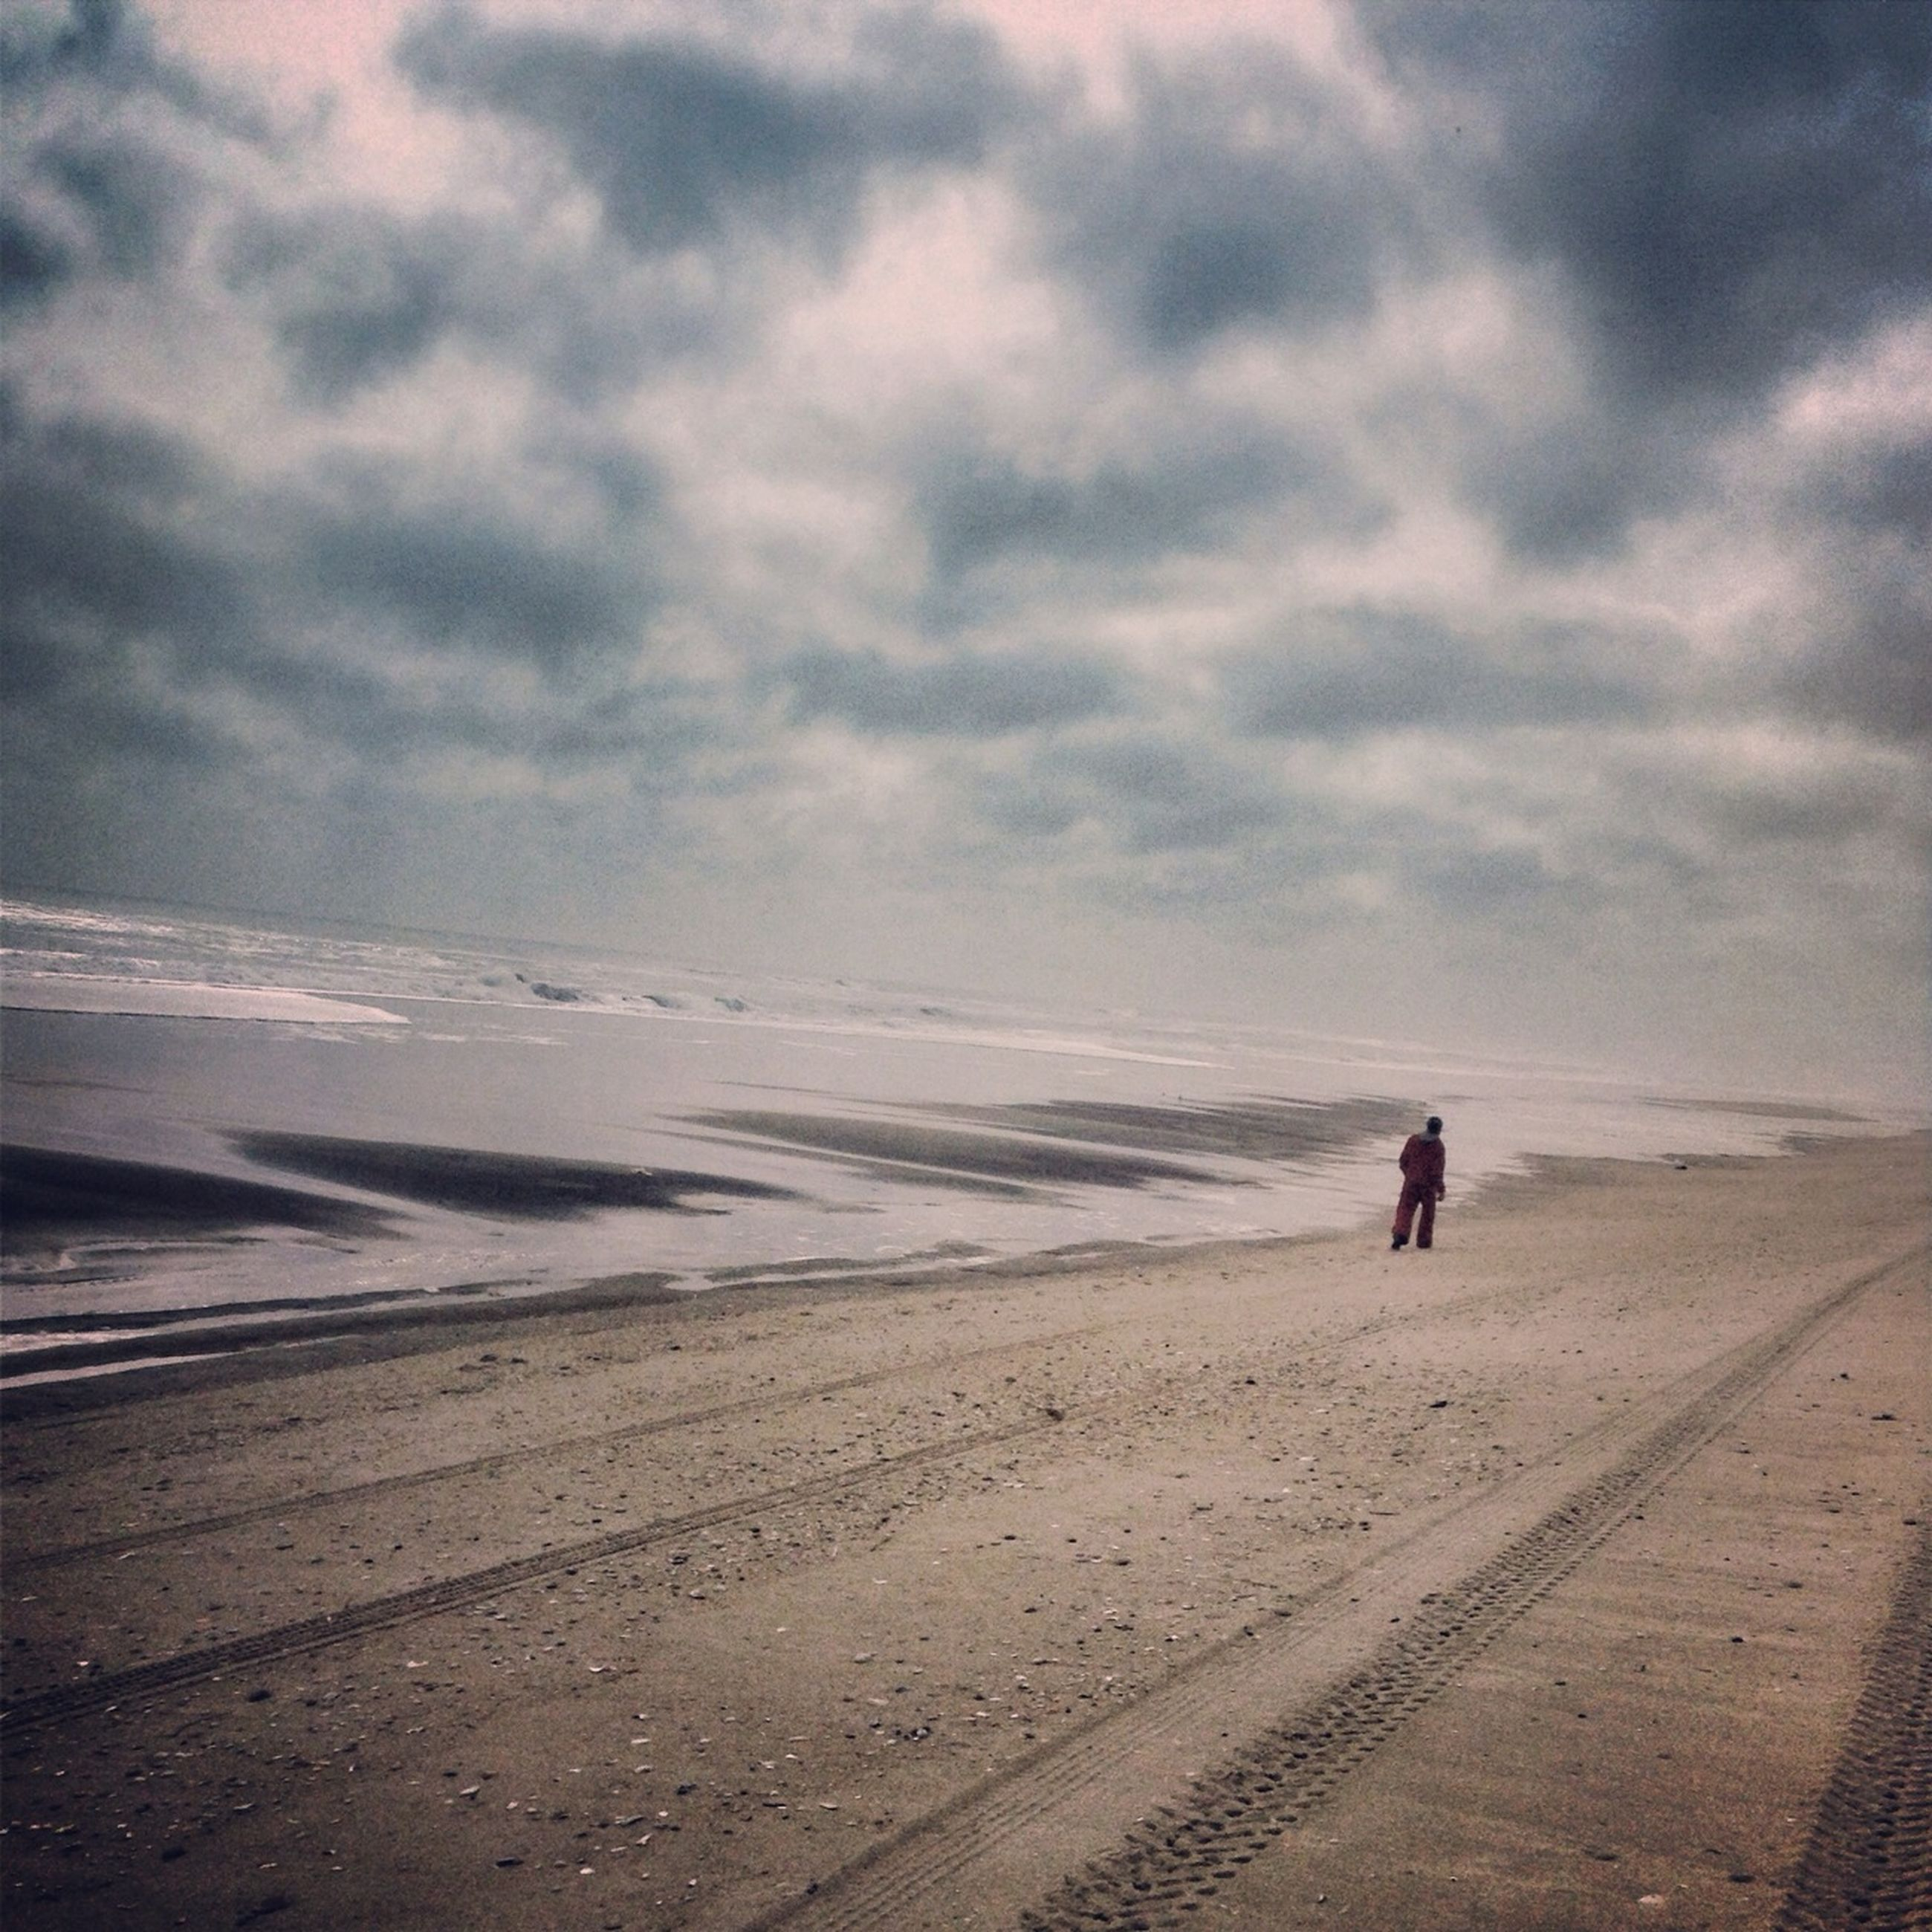 sky, beach, sand, cloud - sky, full length, leisure activity, lifestyles, walking, sea, cloudy, tranquil scene, tranquility, shore, men, scenics, beauty in nature, nature, silhouette